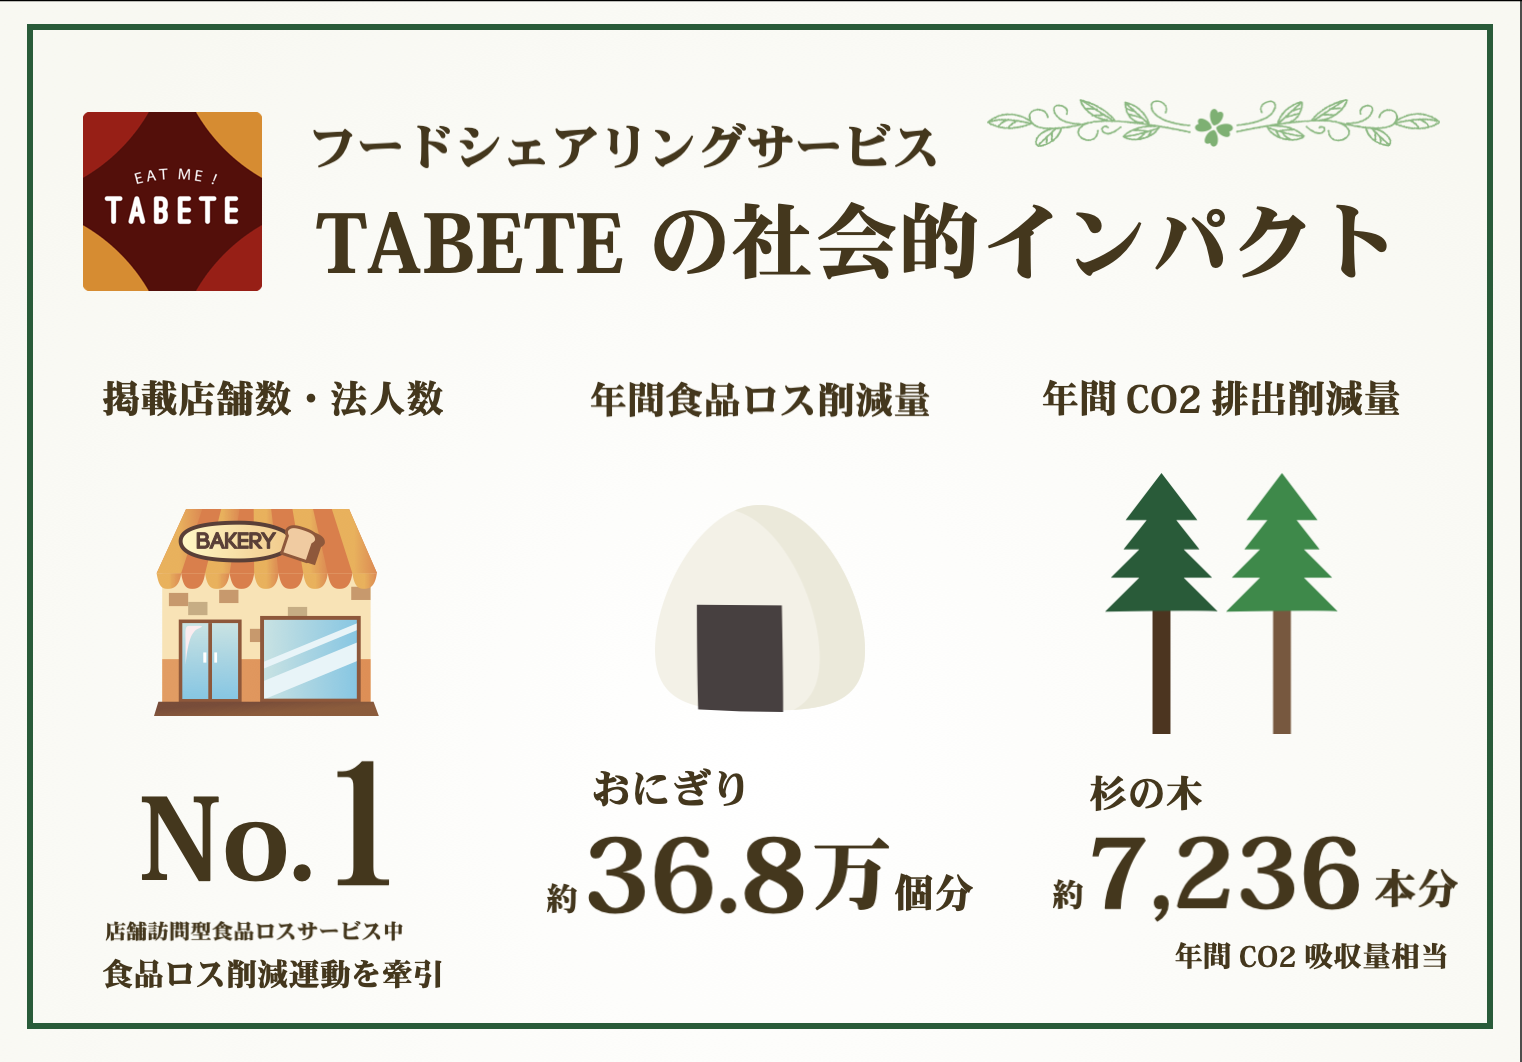 TABETEの社会的インパクト